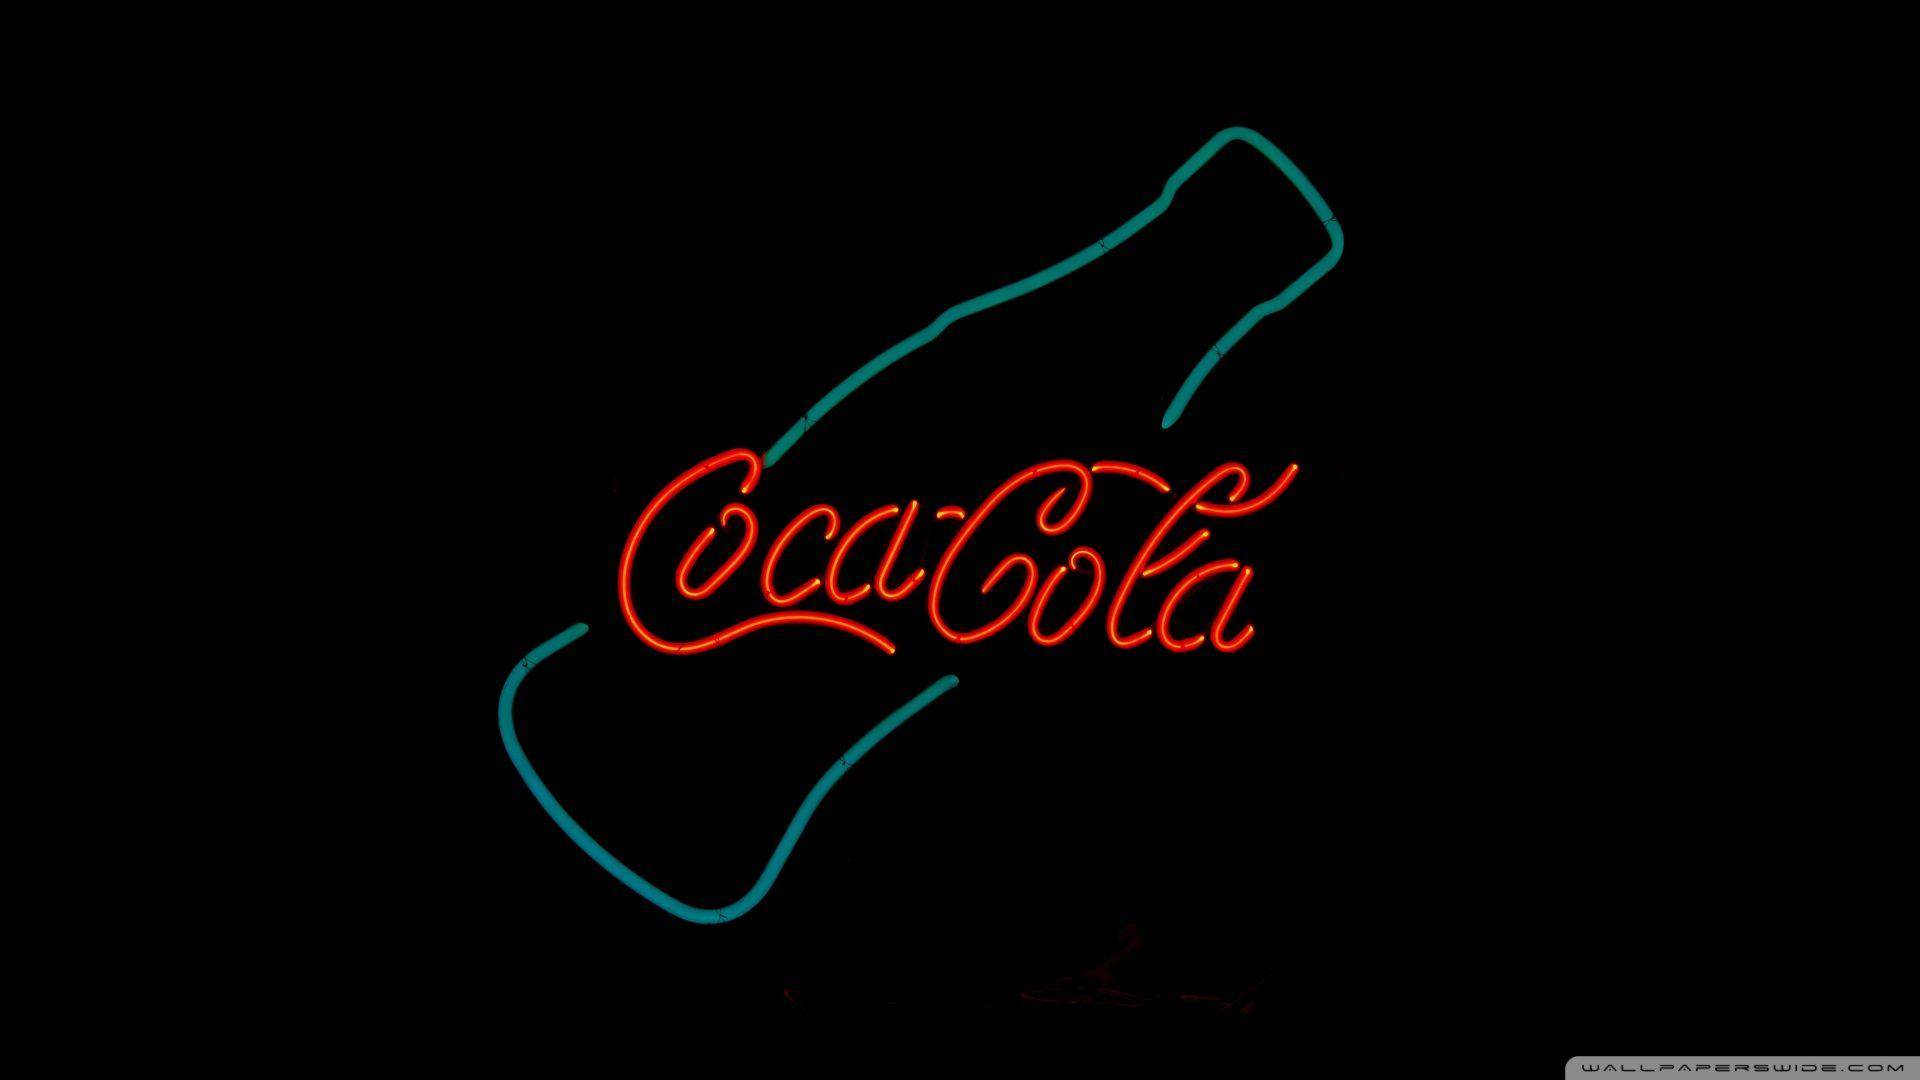 Coca Cola Wallpaper Photos 15351 - Amazing Wallpaperz